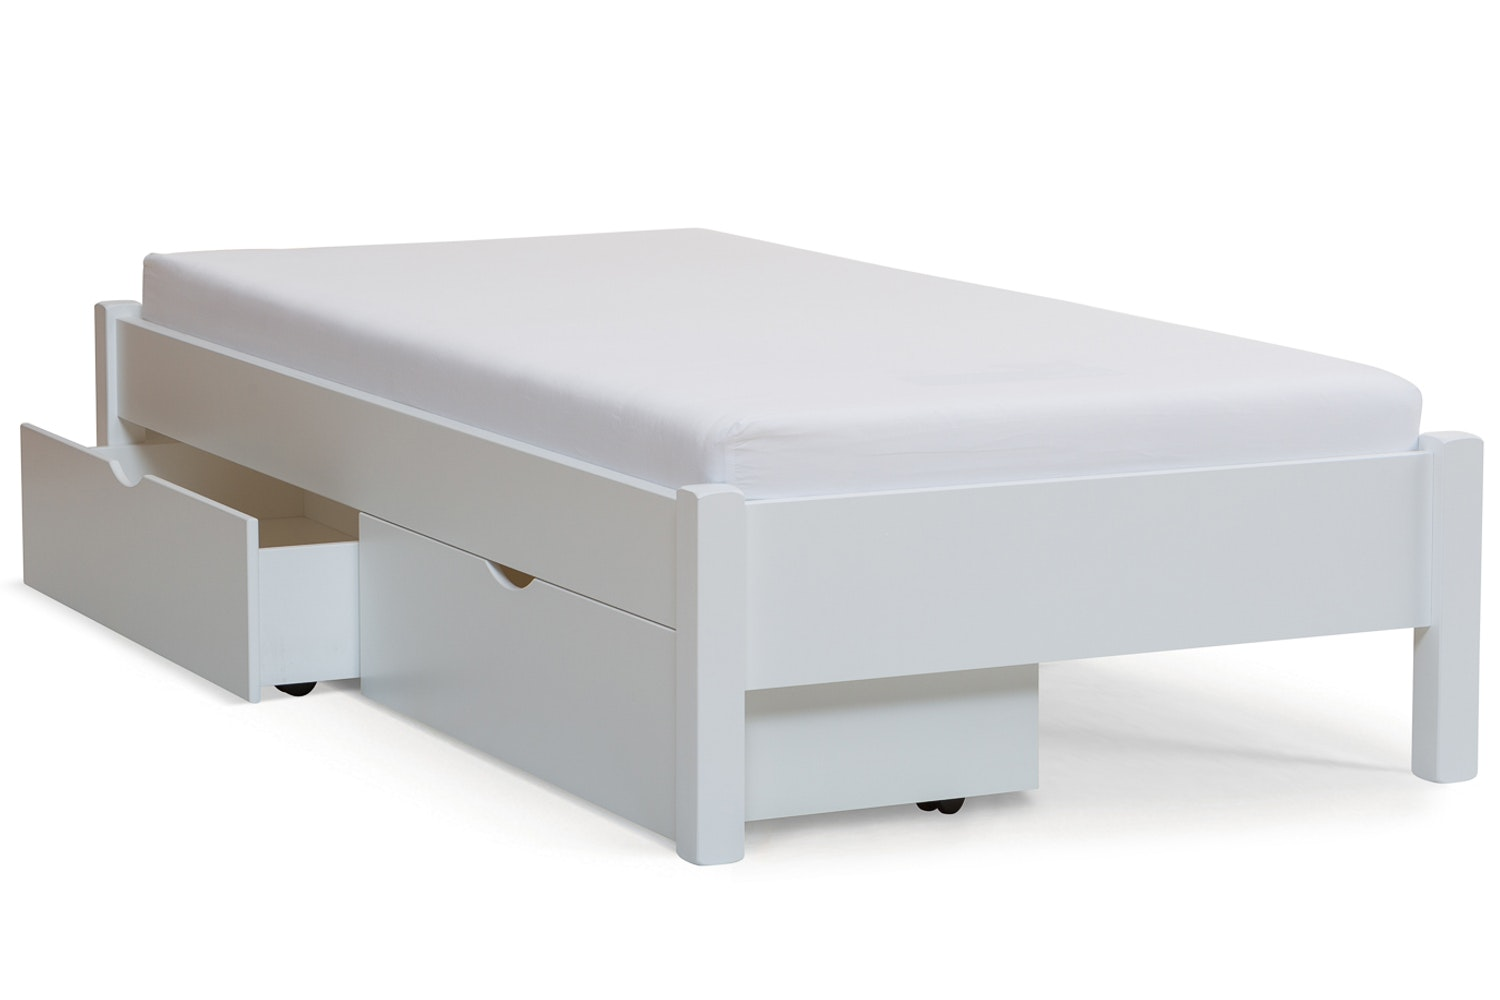 Emily Low Low Bed Frame with Underbed Drawers | 3ft | White